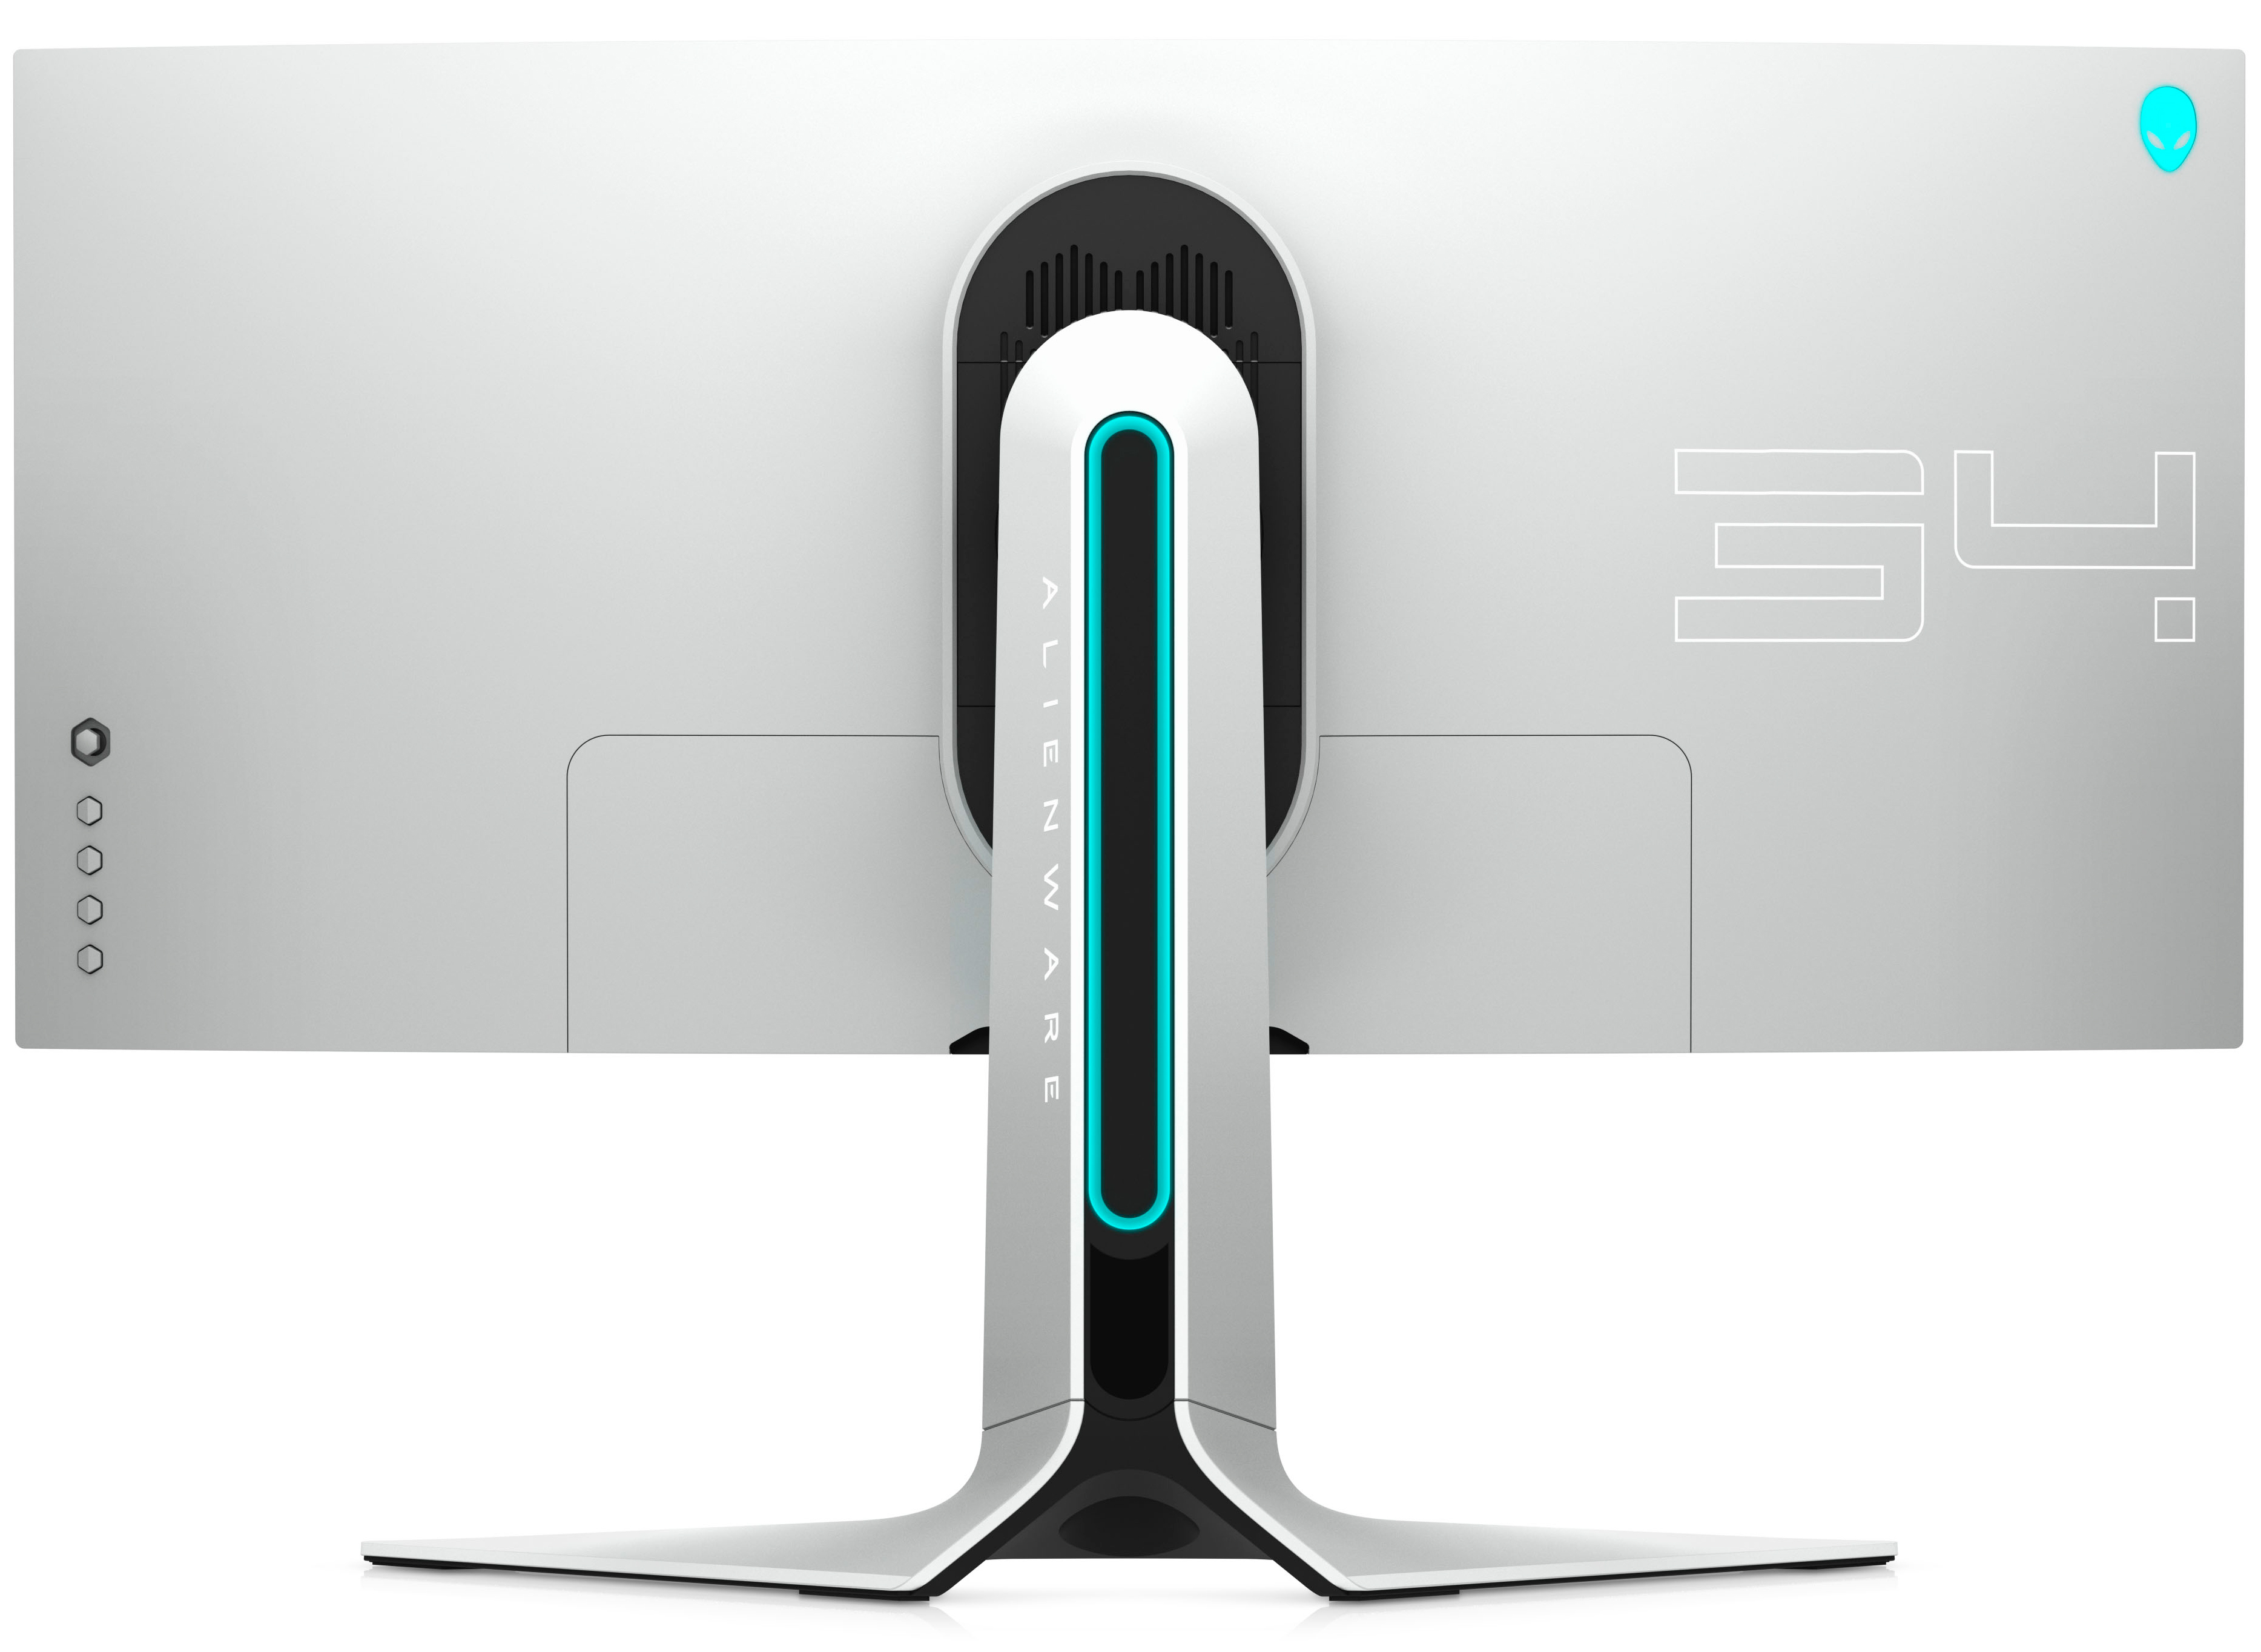 Dell Reveals Alienware 34 Curved Monitor: WQHD IPS with